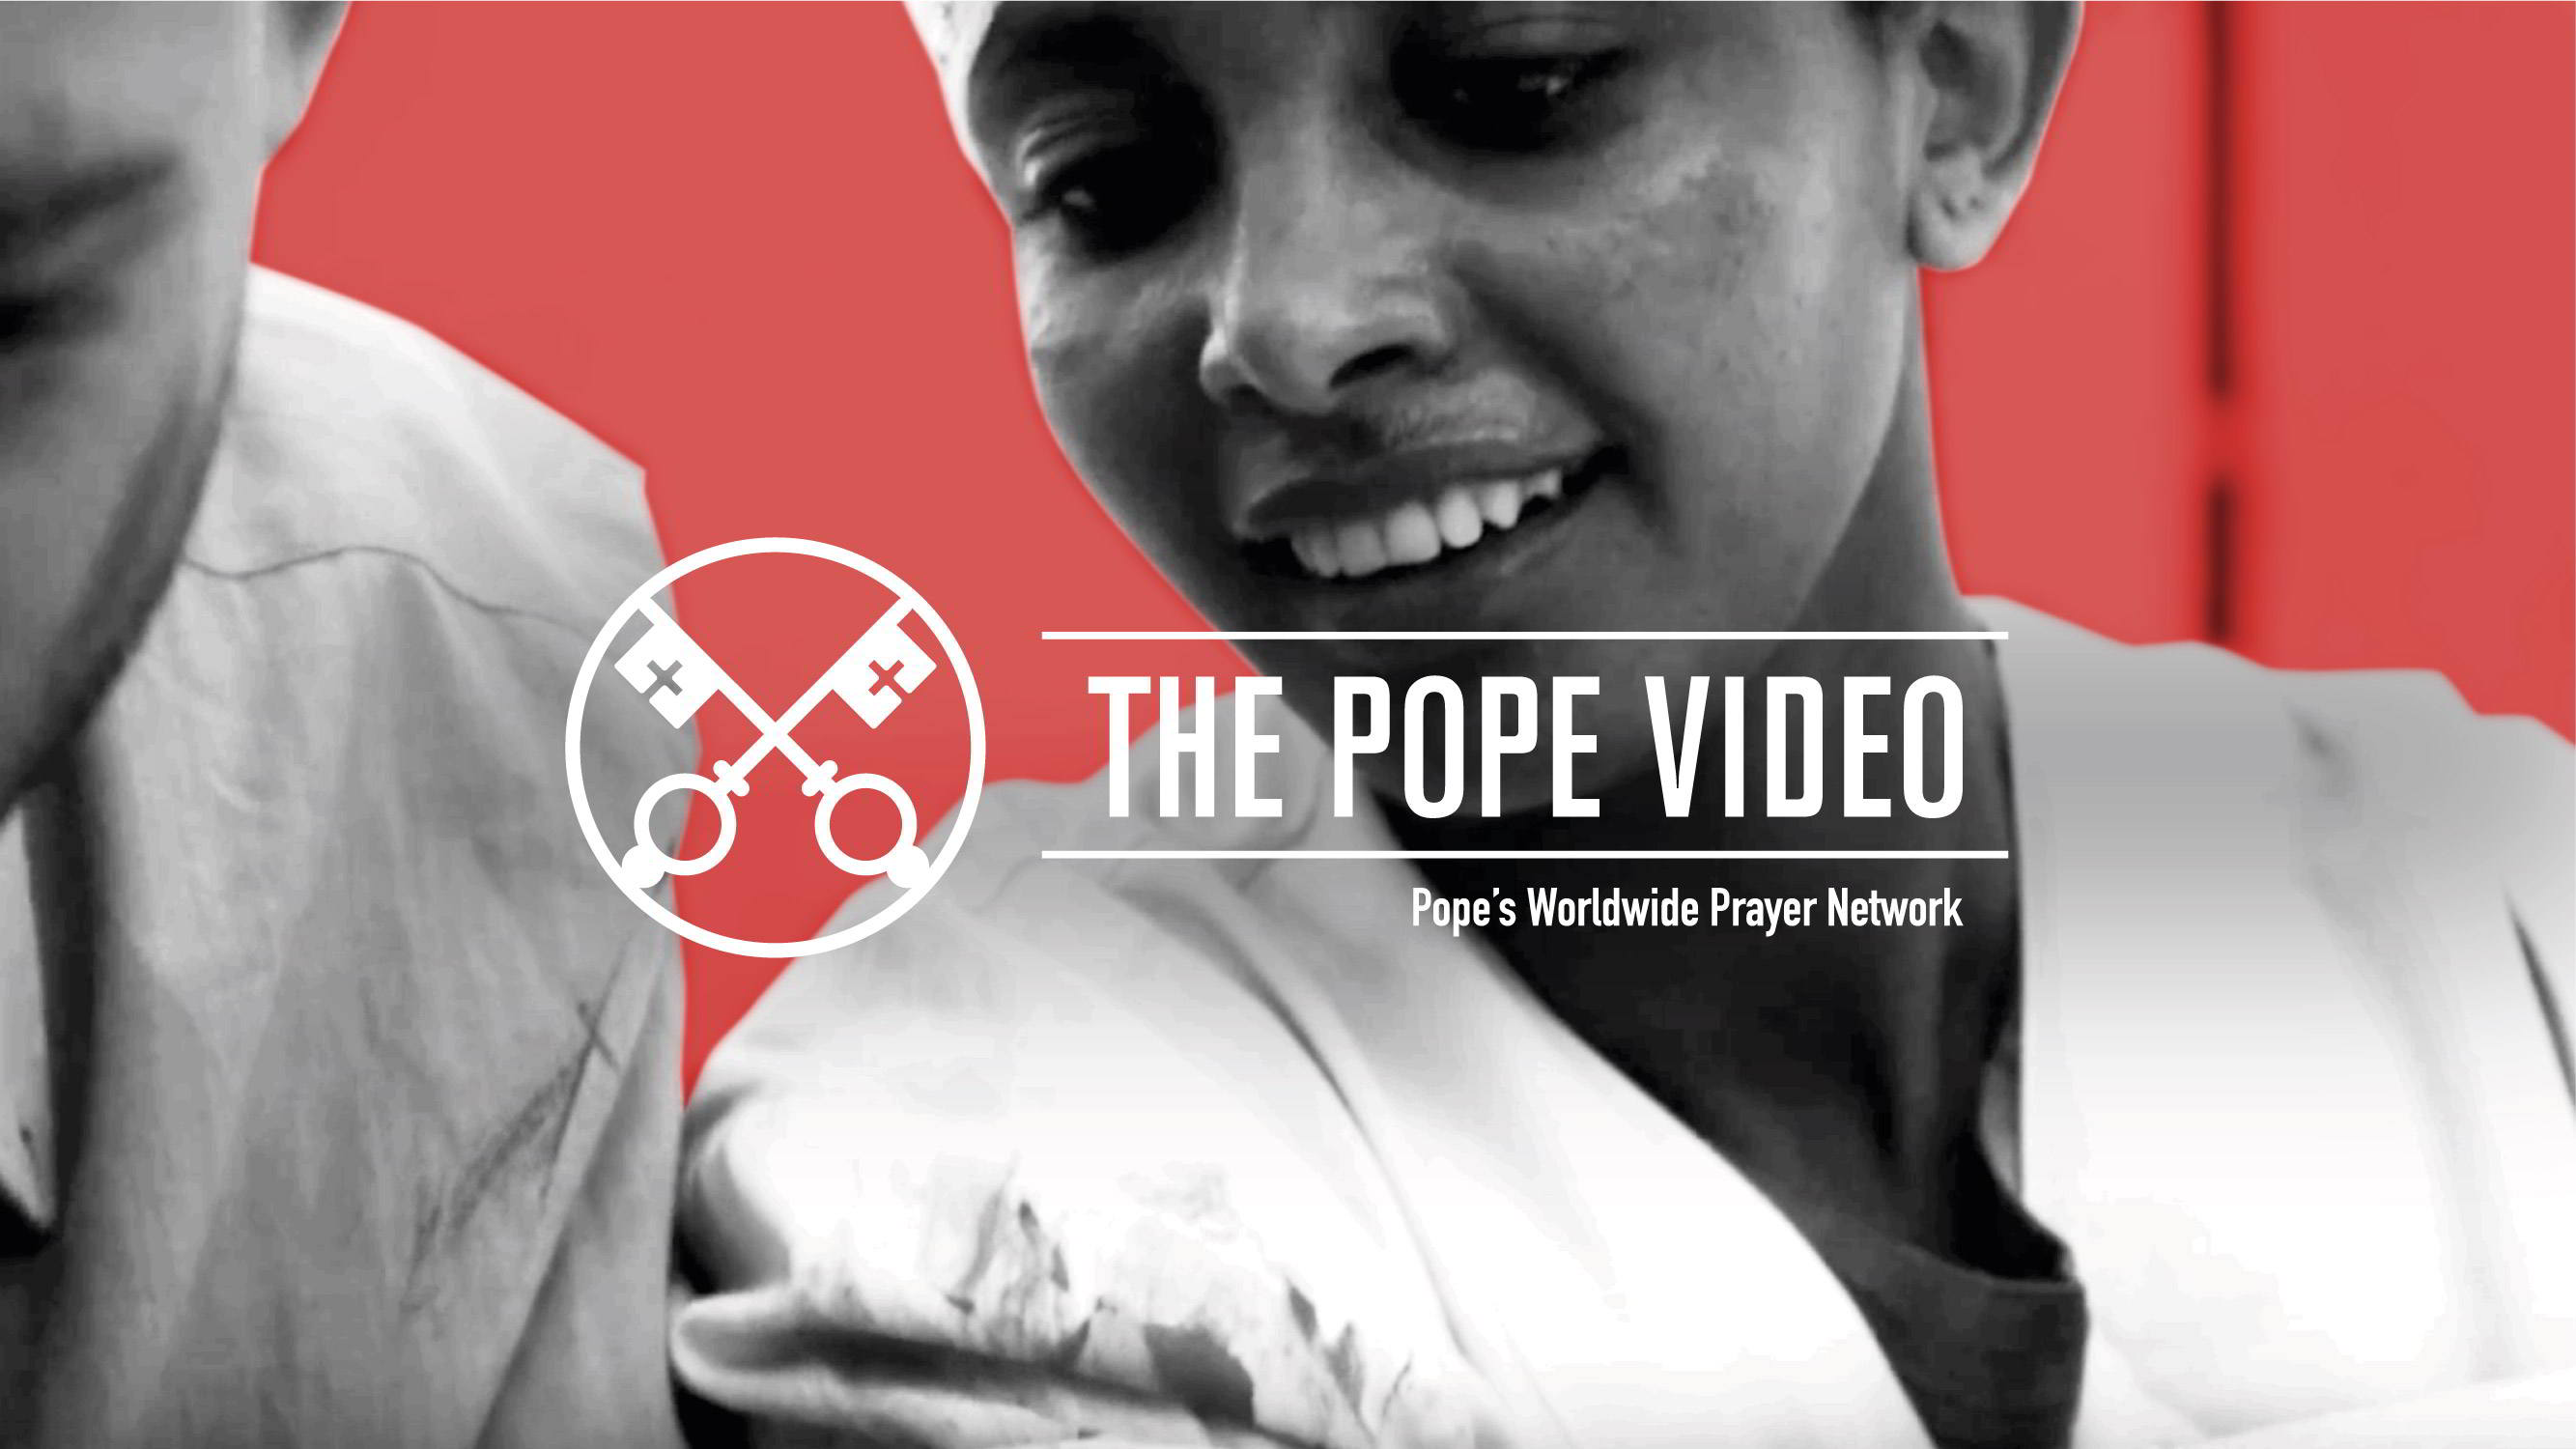 Official-Image-TPV-4-2019-1-EN-The-Pope-Video-Doctors-and-humanitarian-in-War-Torn-Areas